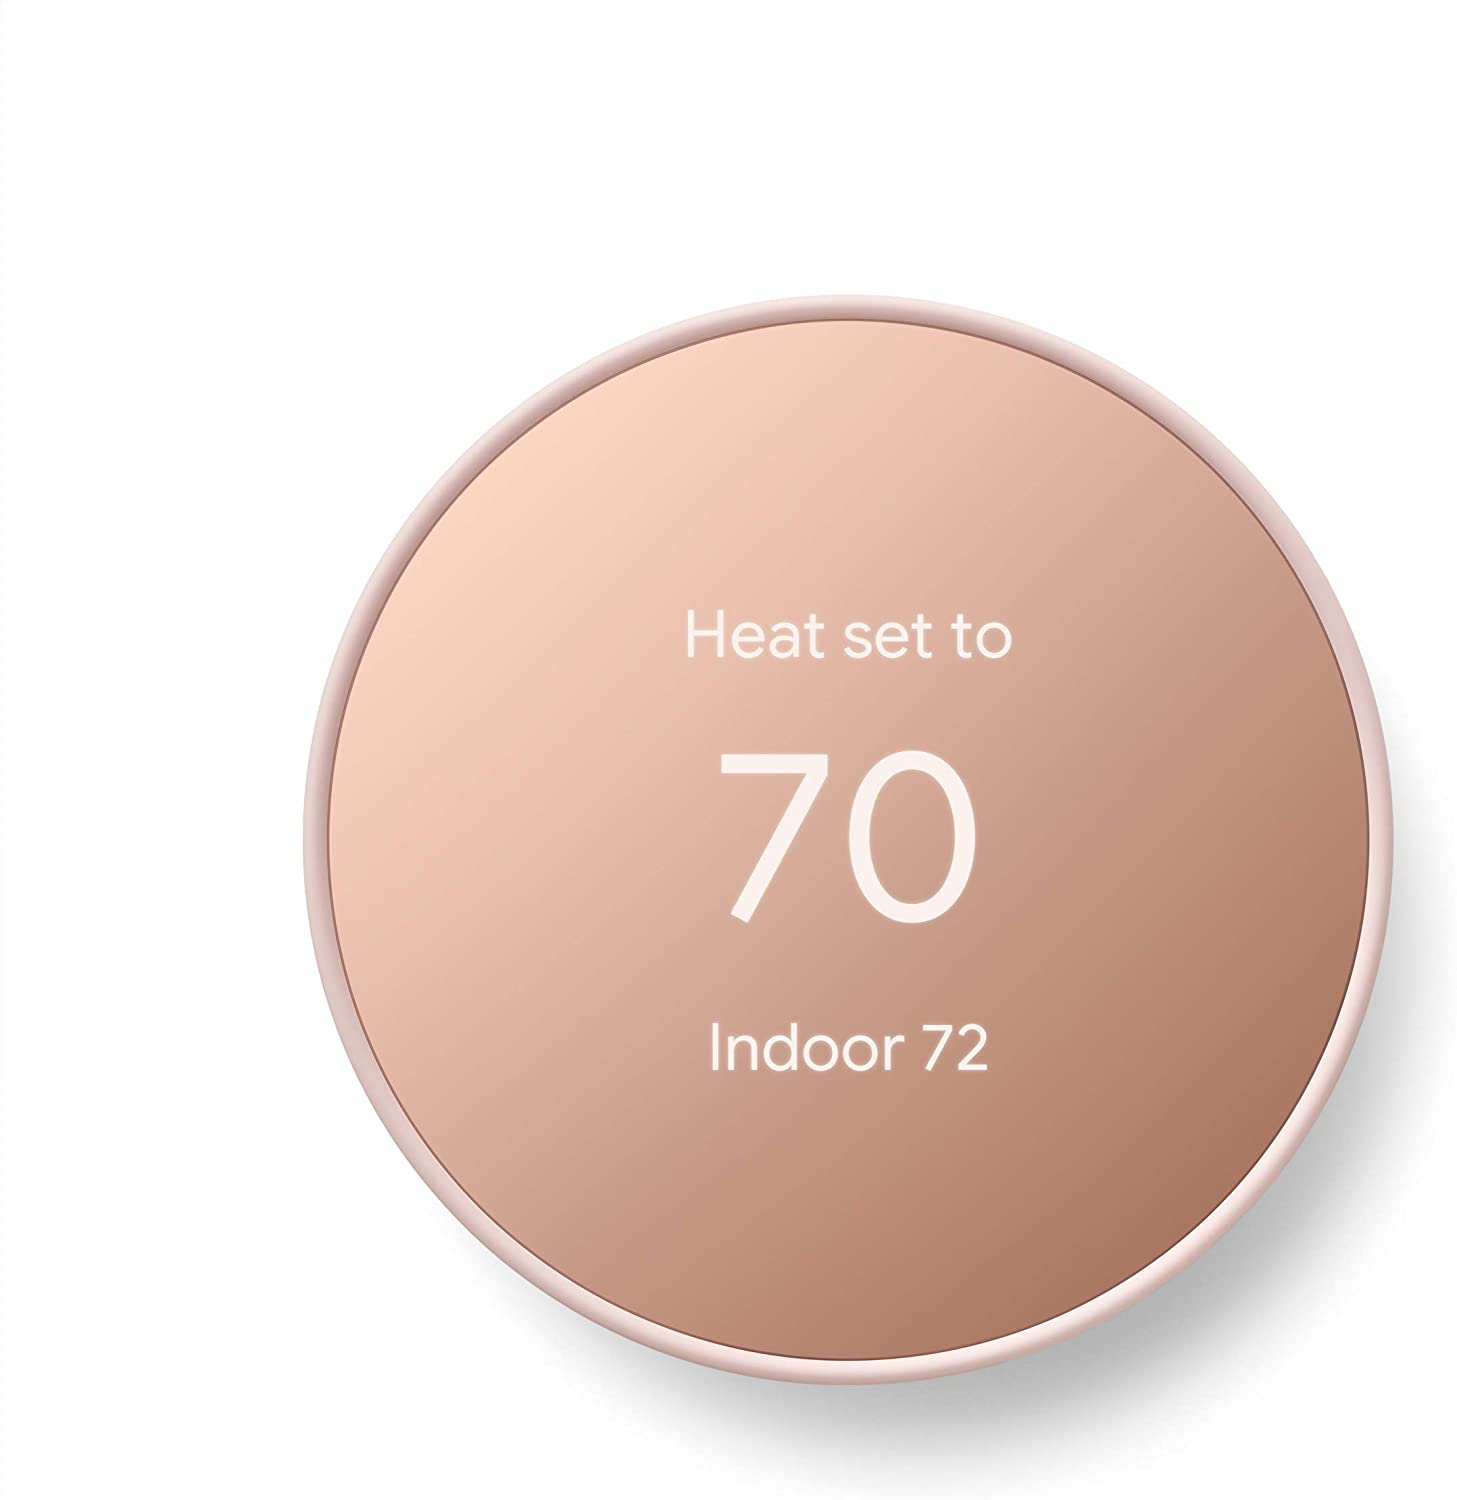 Google Nest Thermostat - Smart Thermostat for Home - Programmable Wifi Thermostat - Sand